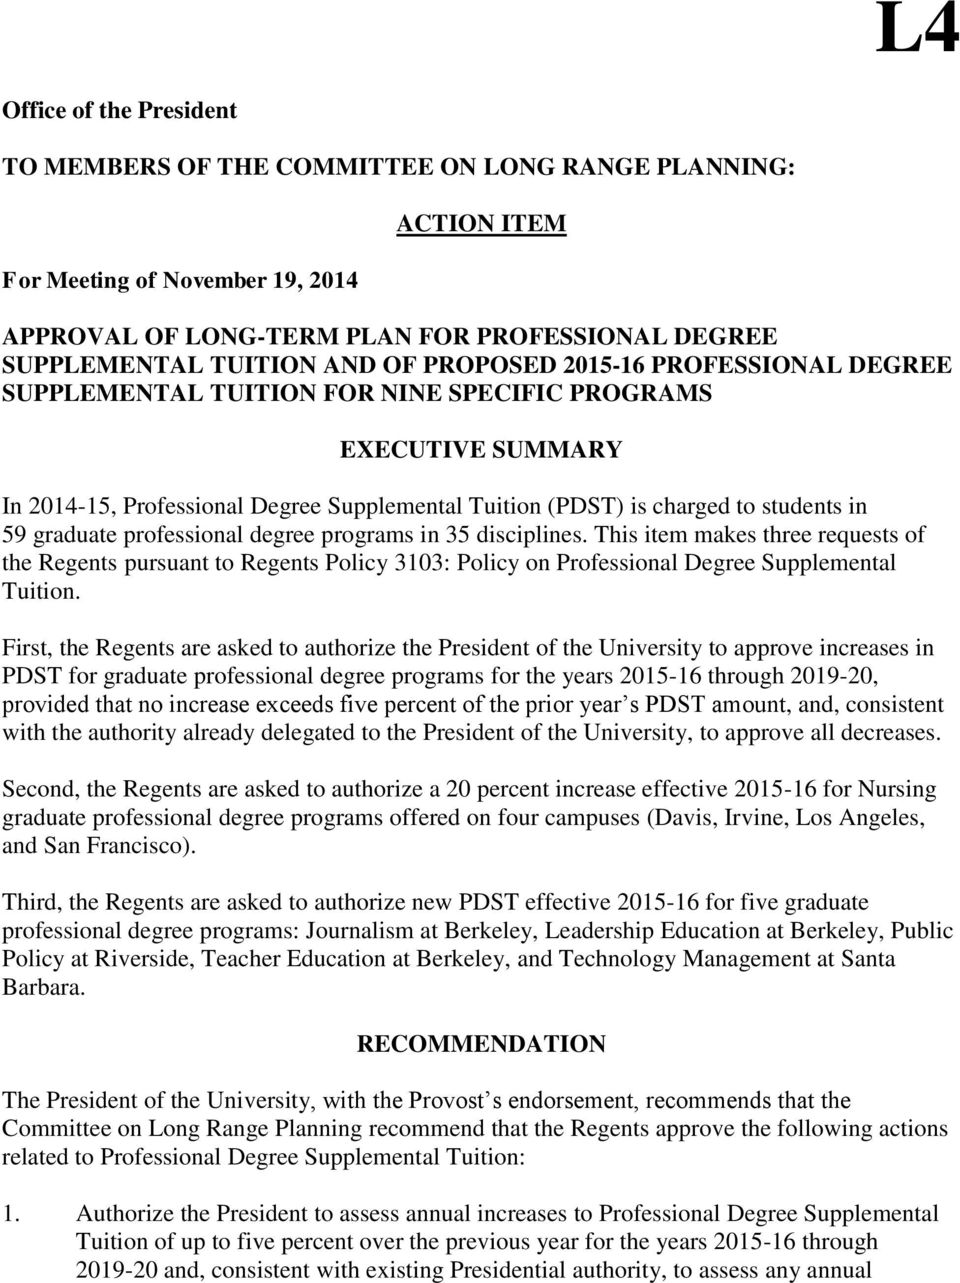 in 35 disciplines. This item makes three requests of the Regents pursuant to Regents Policy 3103: Policy on Professional Degree Supplemental Tuition.